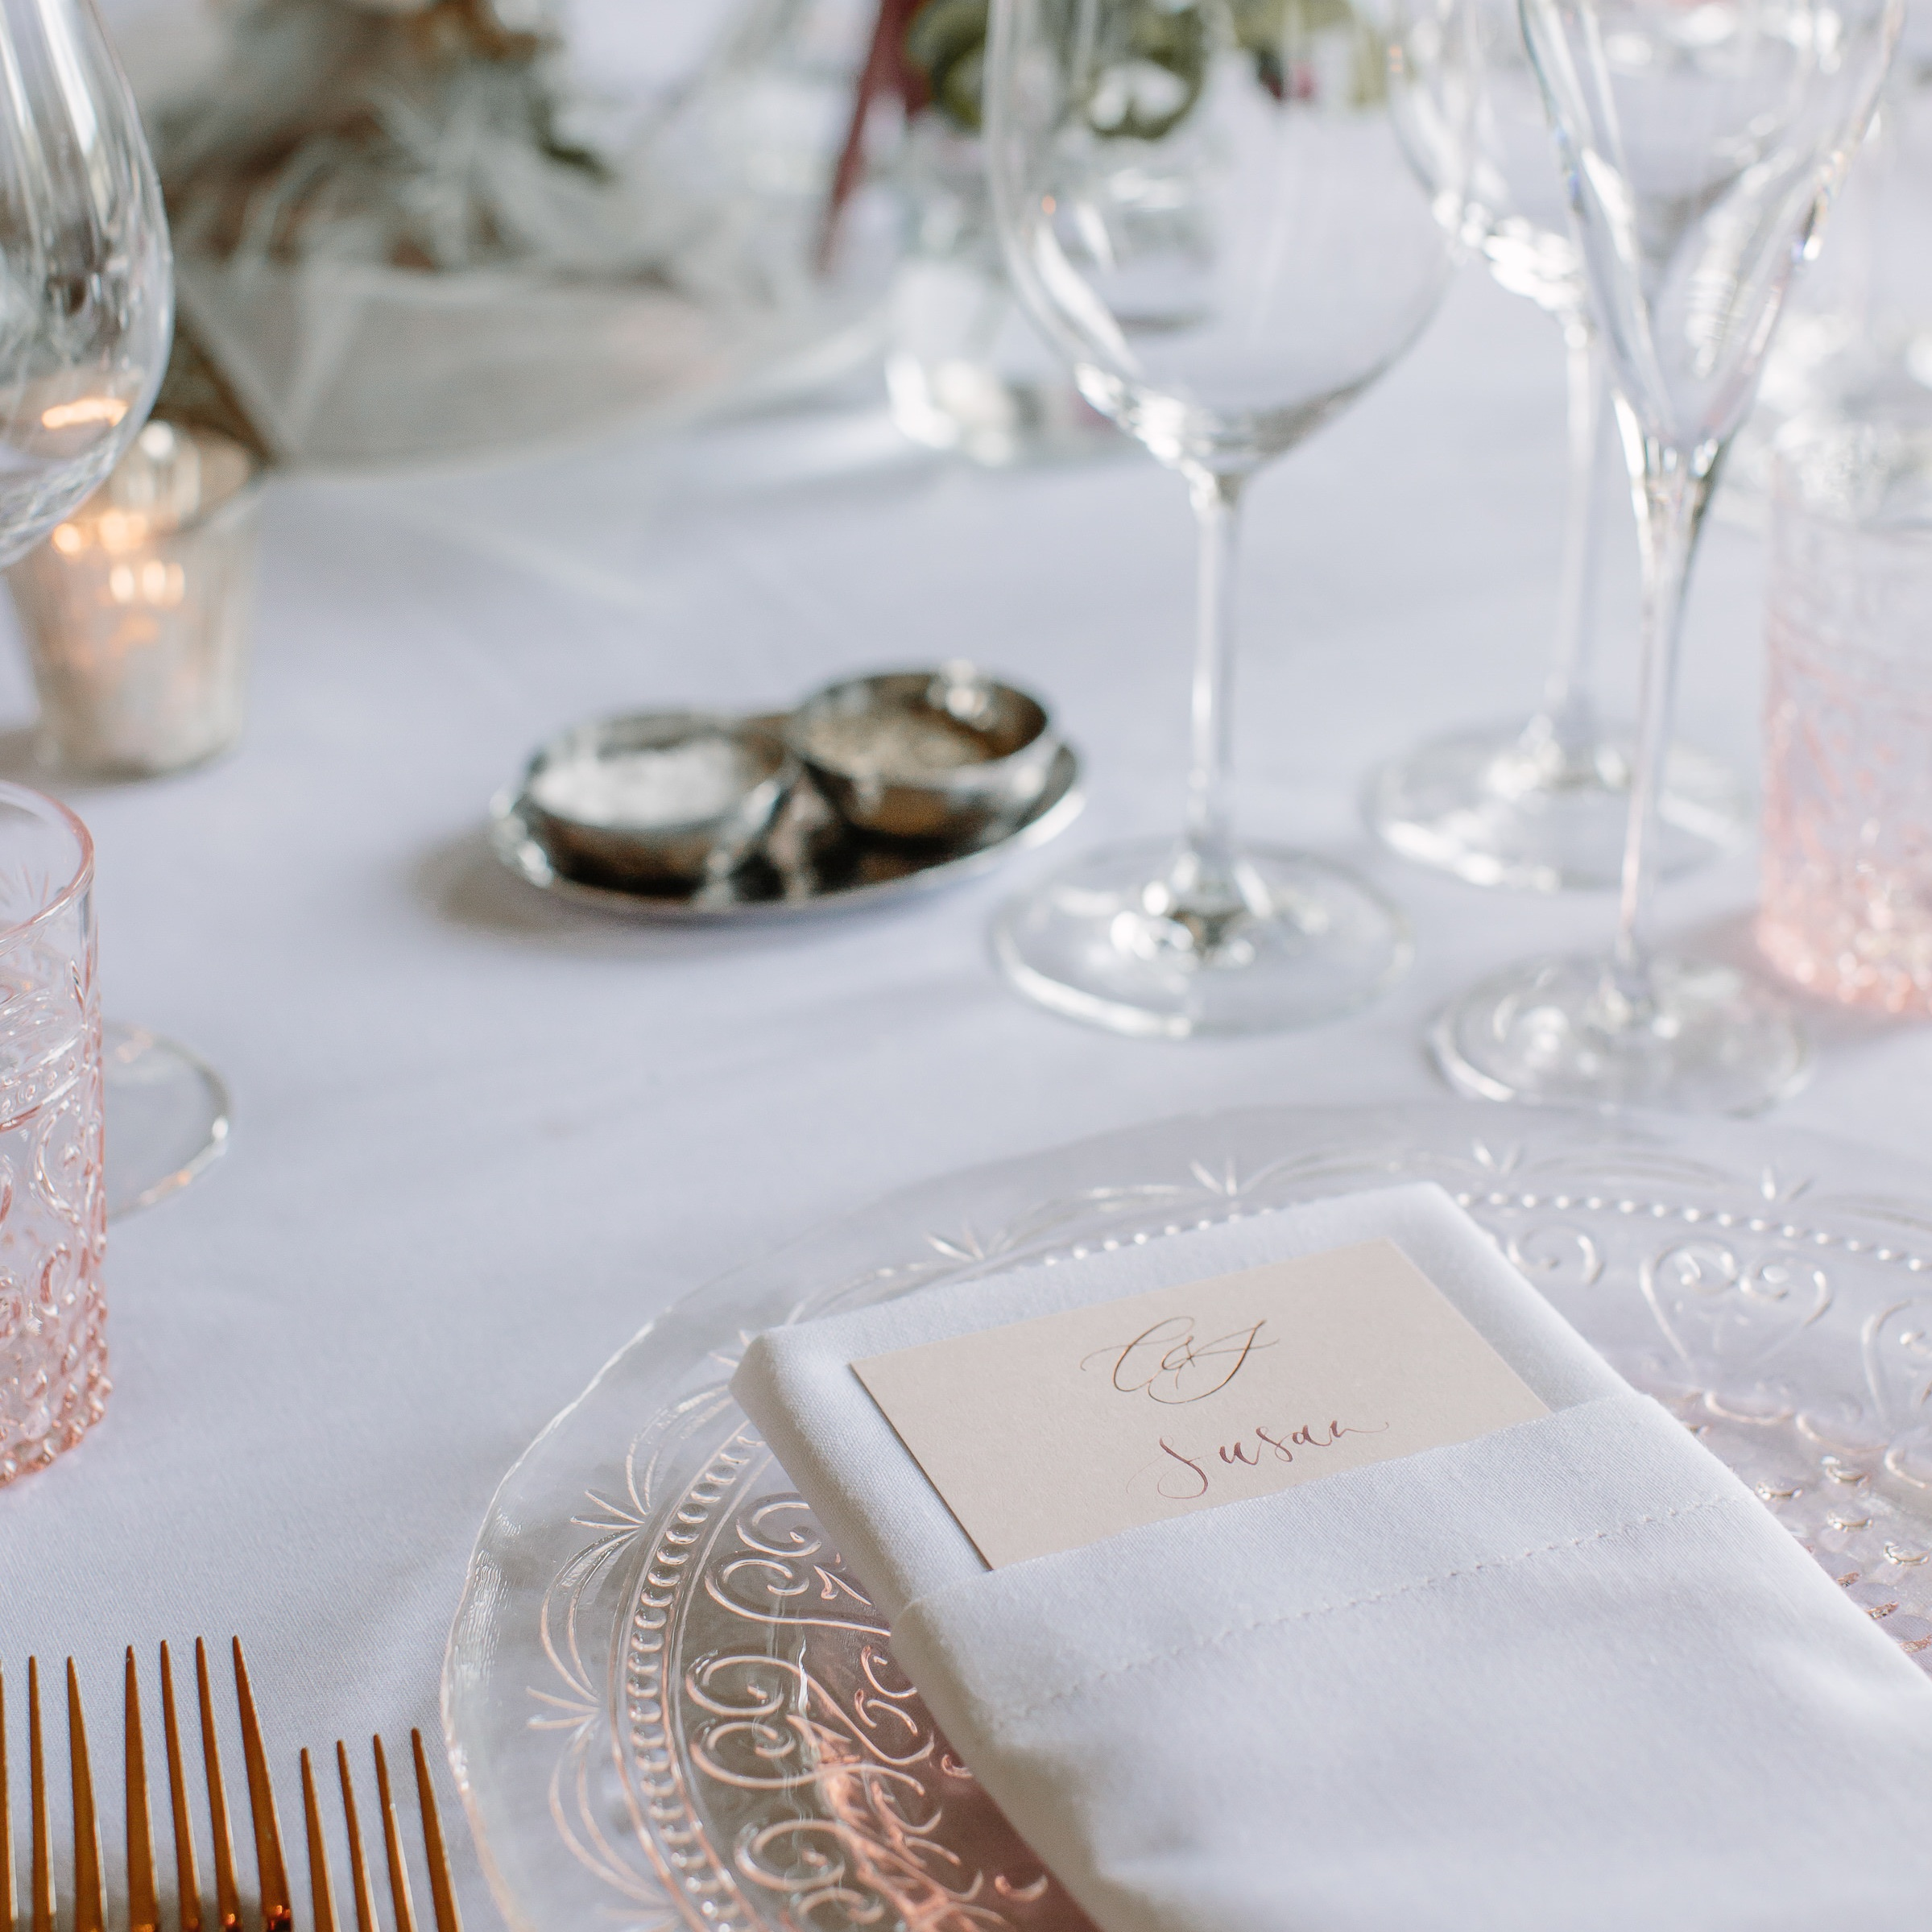 Personalised individual menu cards doubled up as place settings, hot foil printed by Rose Press and captured by Joanna Brown at Ragley Hall